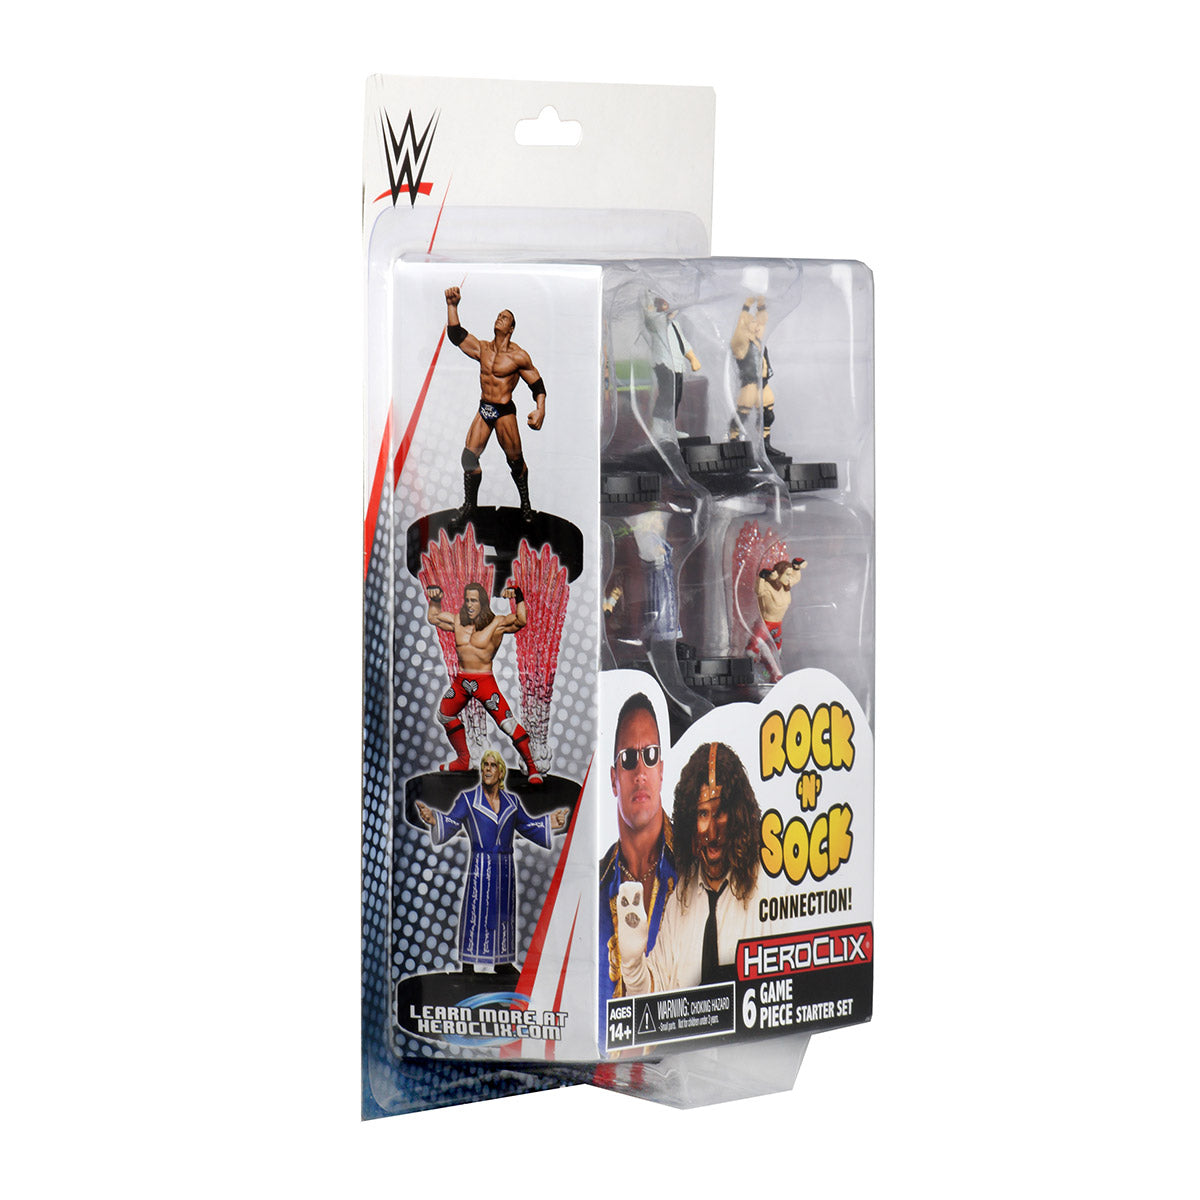 WWE HeroClix The Rock 'n' Sock Connection 2-Player Starter Set | Lvl Up Gaming UK